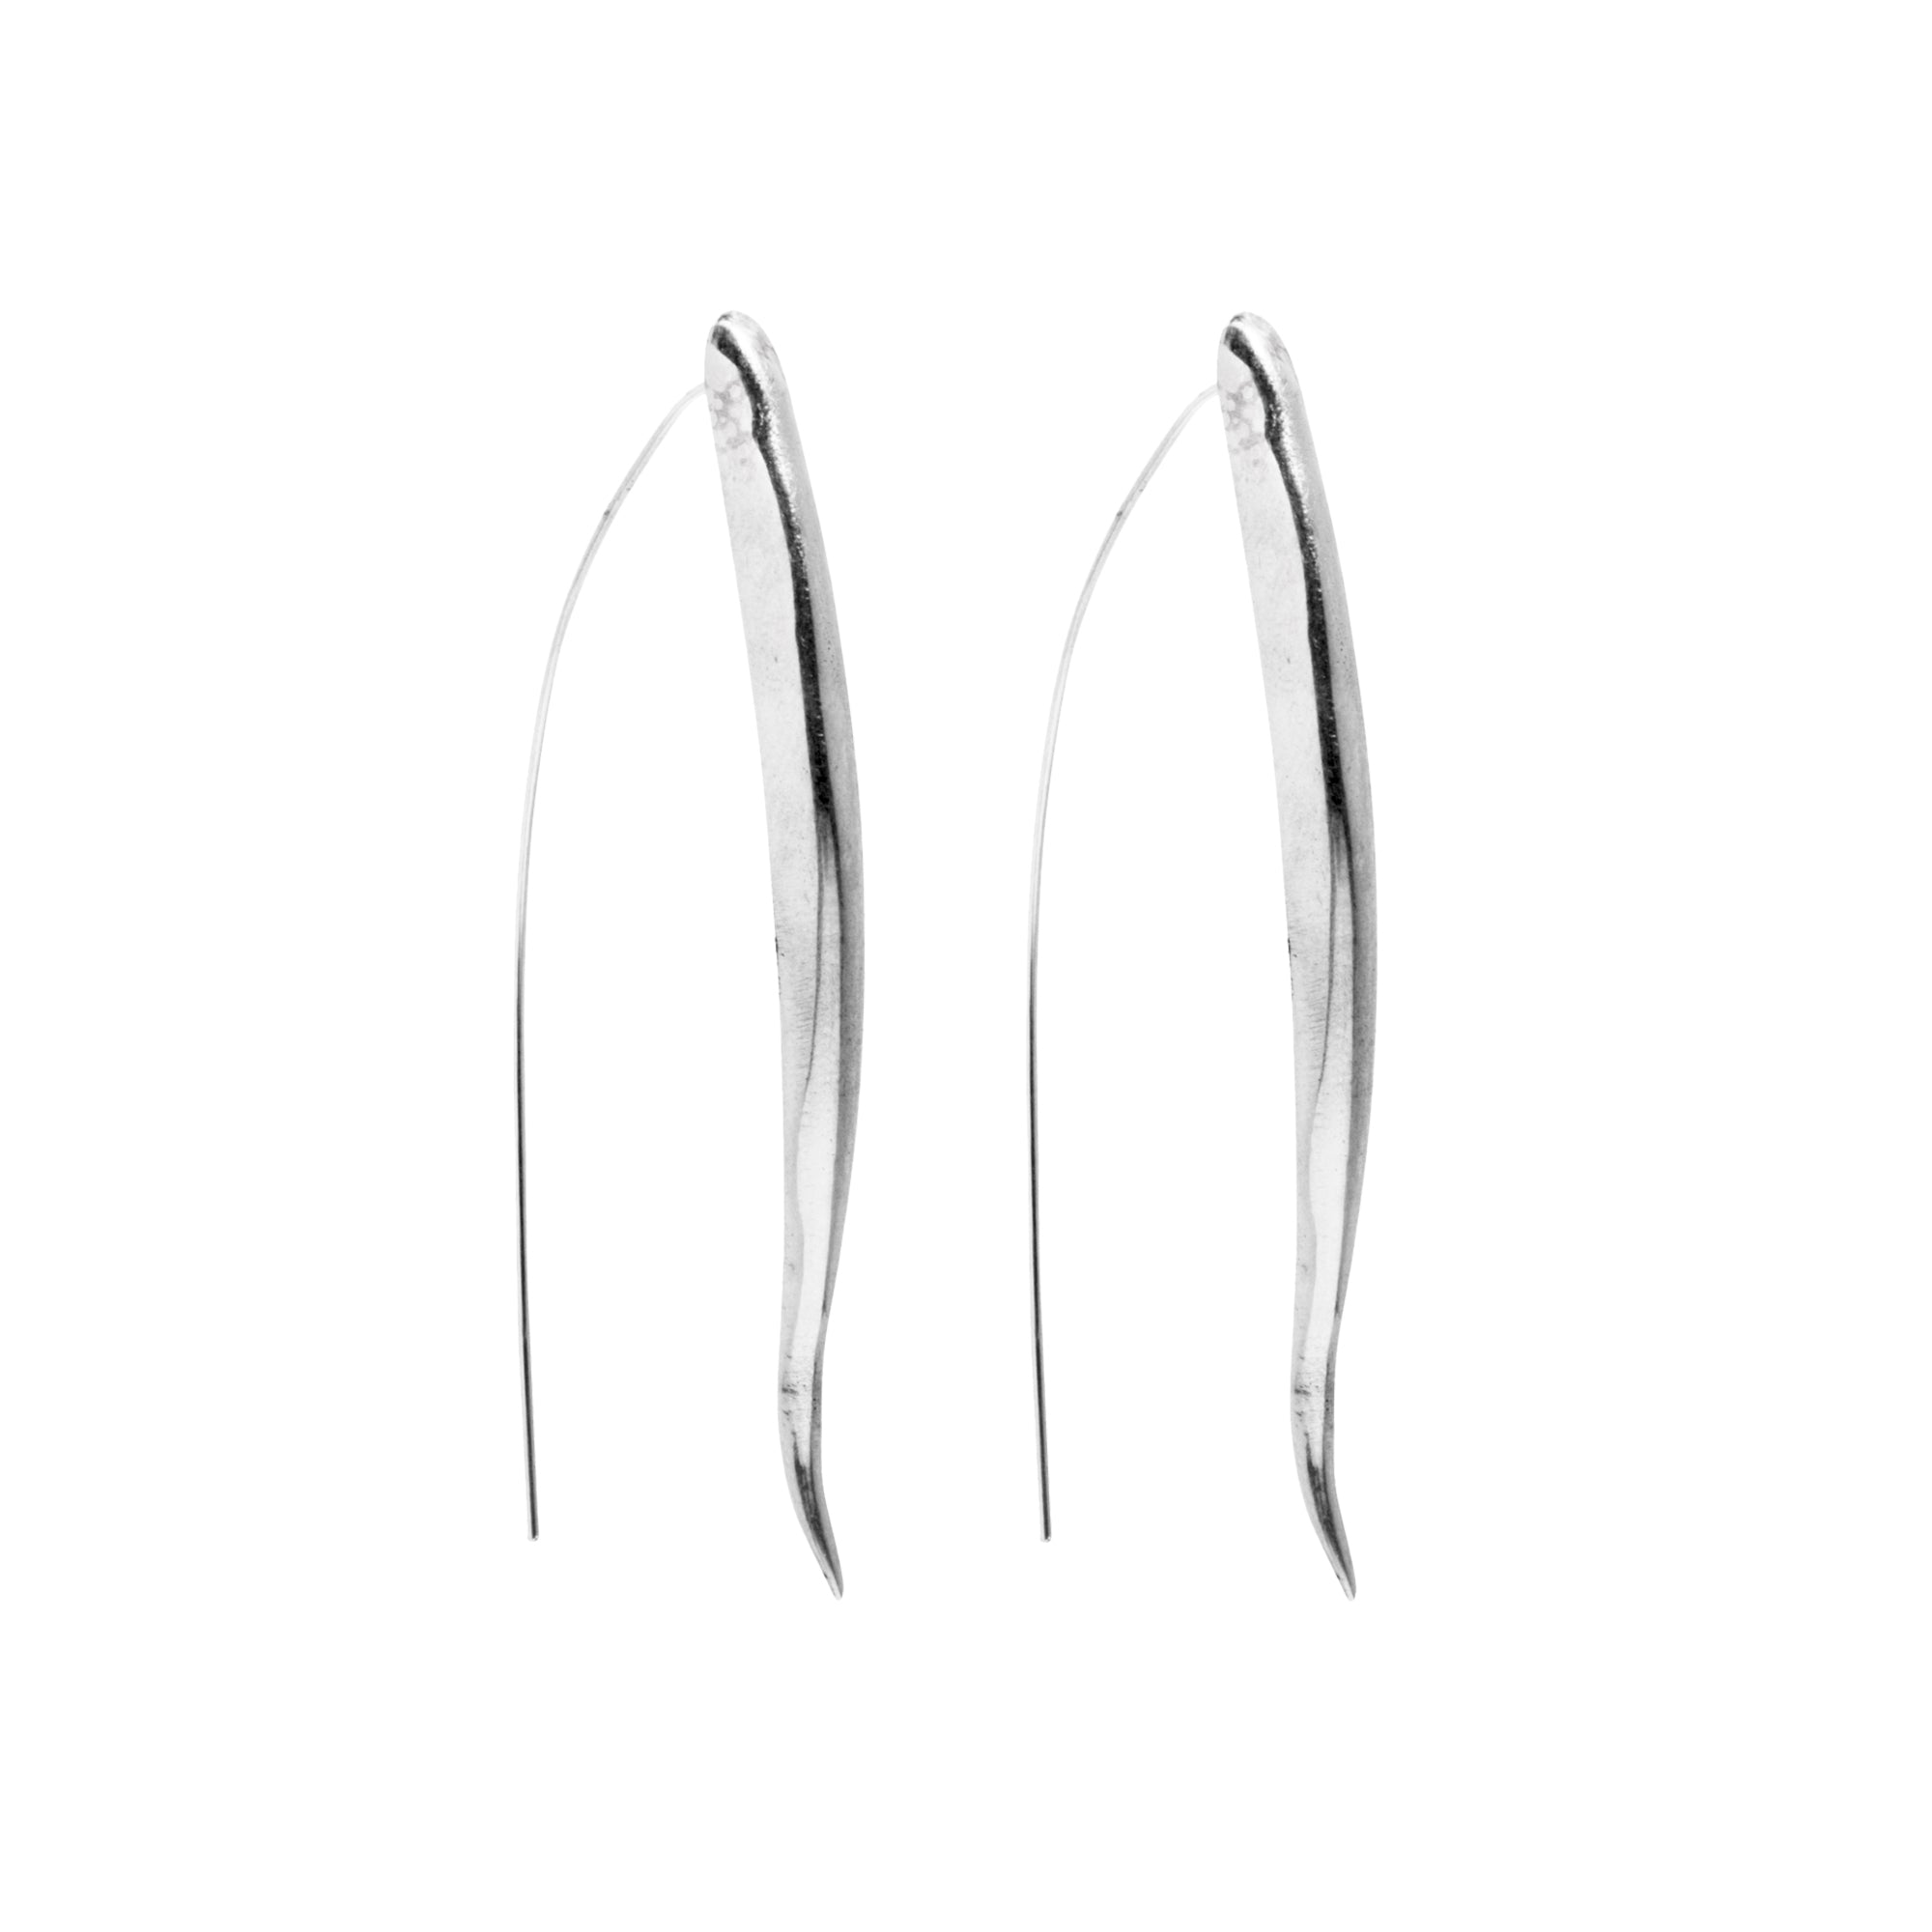 Silver Kalahari Earrings by Ariana Boussard-Reifel for Broken English Jewelry